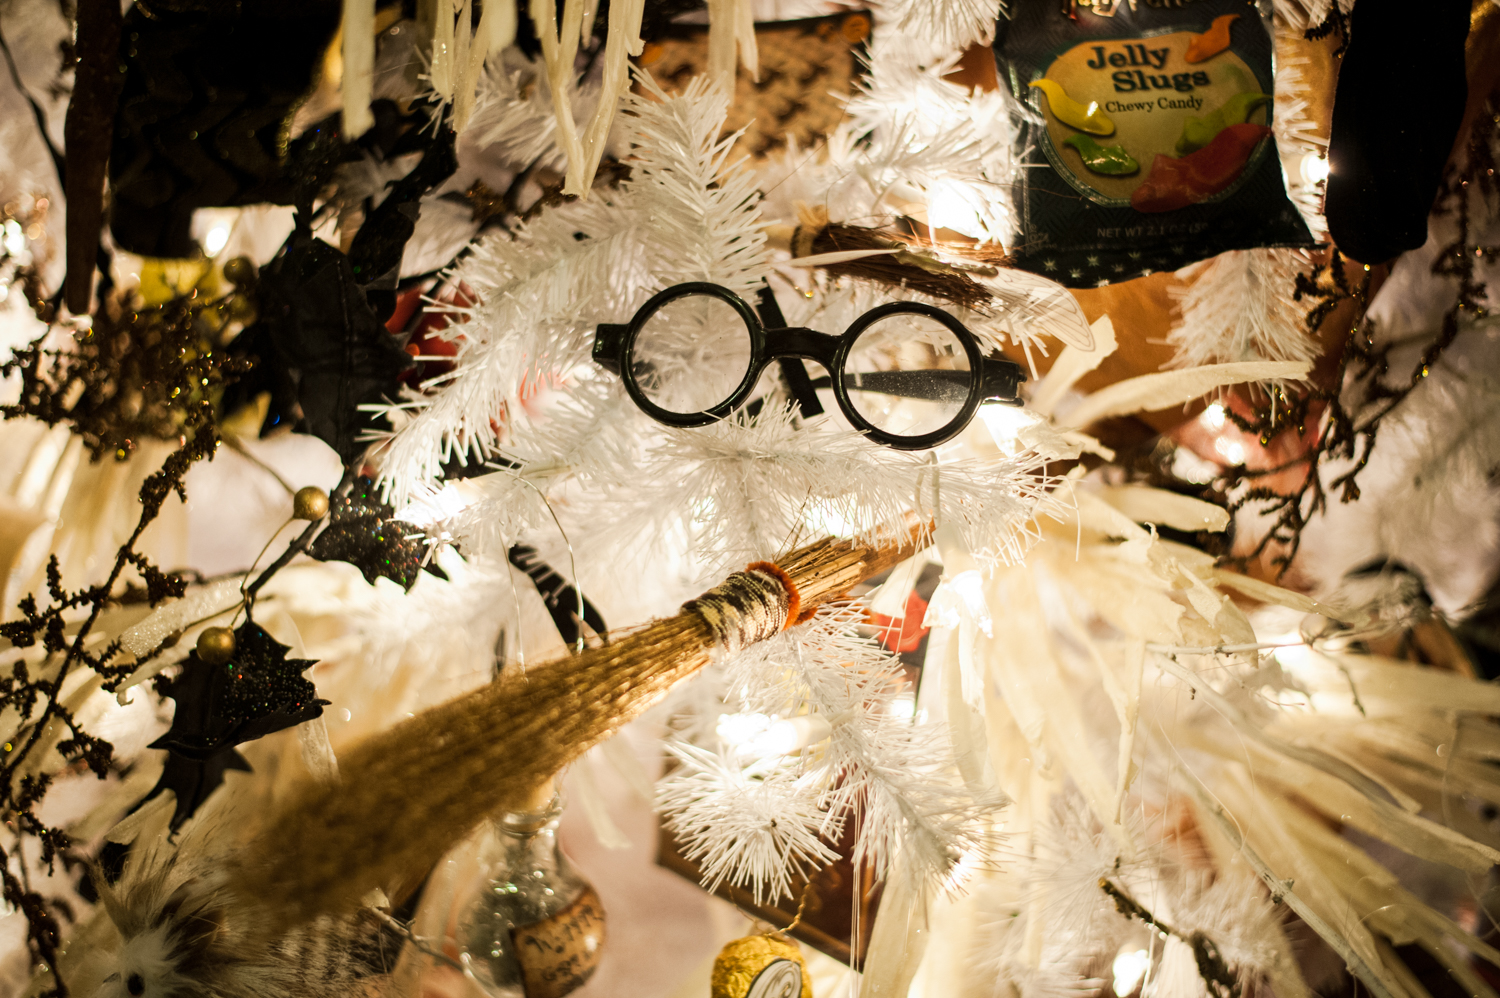 Holidays with Harry Tree - 9 feet tall, loaded with Harry Potter memorabilia. Located in the Fairmont Olympic Hotel in downtown Seattle, the annual Festival of Trees has officially kicked off this holiday season. Patrons can view the trees on display through December 2, 2018 - or bid on them for their home/office. Proceeds benefit Seattle Children's Hospital. (Image: Elizabeth Crook / Seattle Refined)